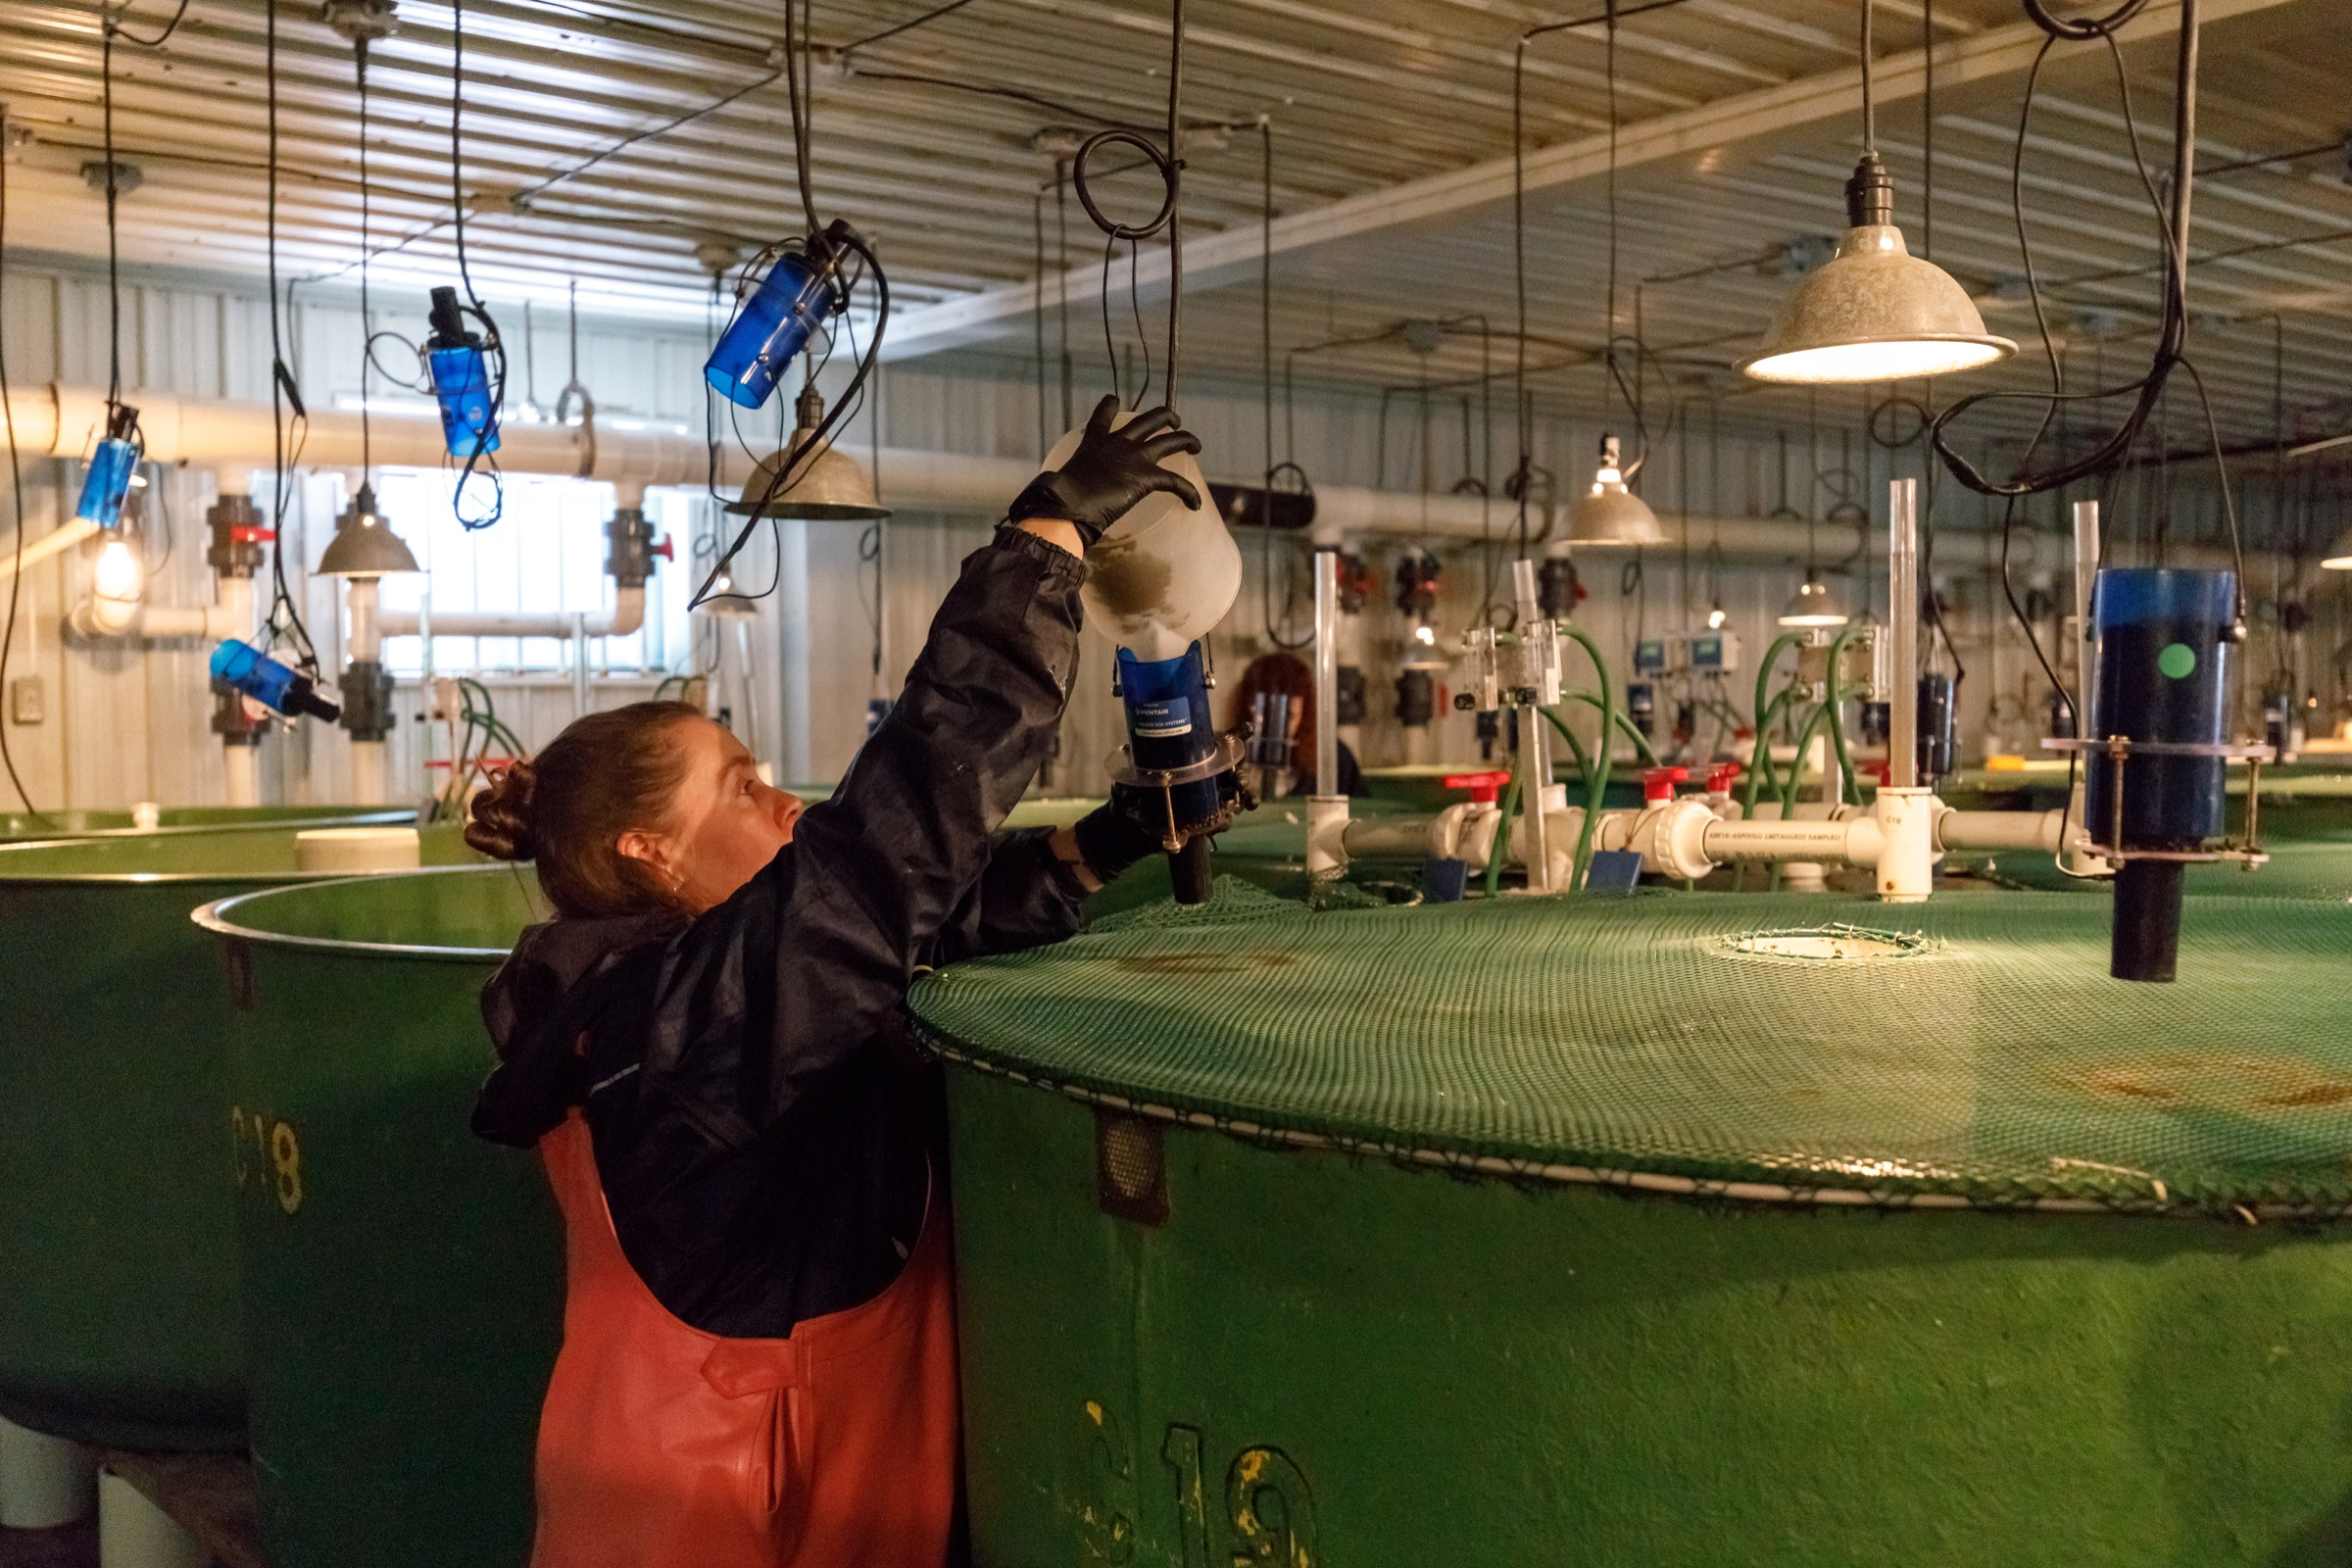 Technician Amanda Cudmore fills feeders that hang above tanks inside the AquaBounty facility. Photograph by Stephen DesRoches